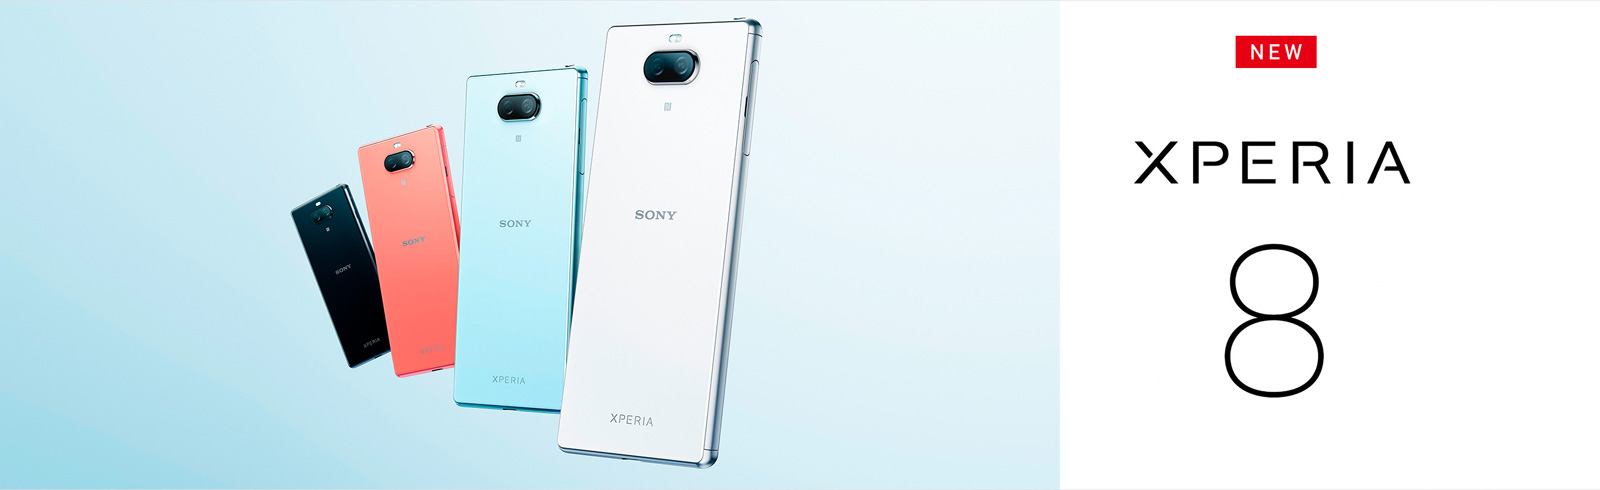 "Sony Xperia 8 is launched in Japan with a 6"" 21:9 FHD+ display, Snapdragon 630 chipset"